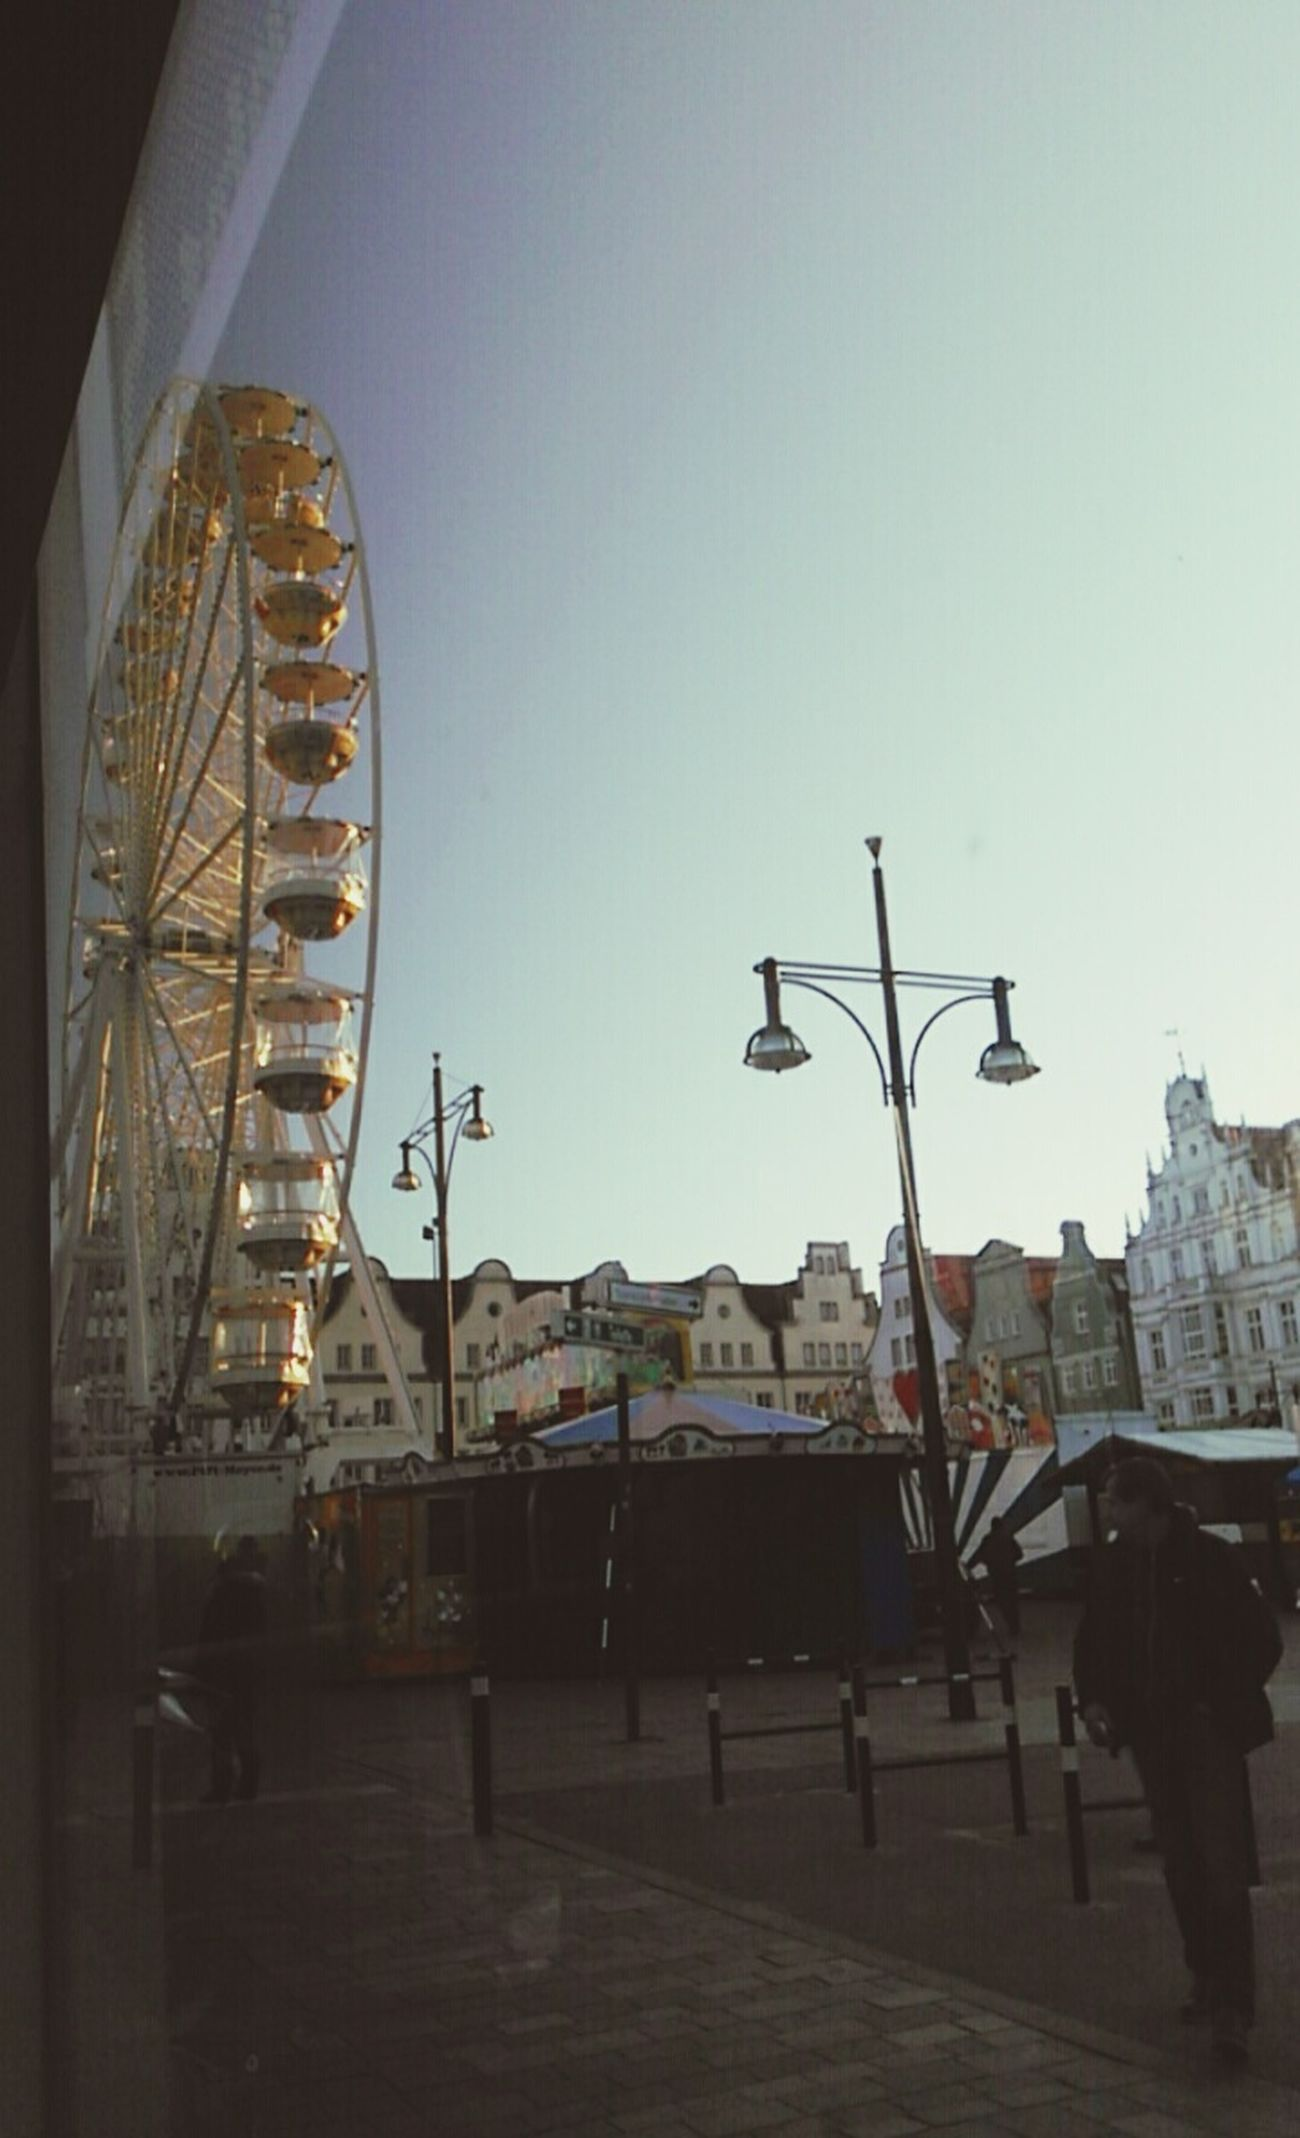 Big Wheel Ostern 2016🌱 Ostermarkt Easter 2016 Easter Market White Wheel Straßenbahnsicht Train View Neuer Markt Rostock Buildings Good Weather Blue Sky Springtime Rostock